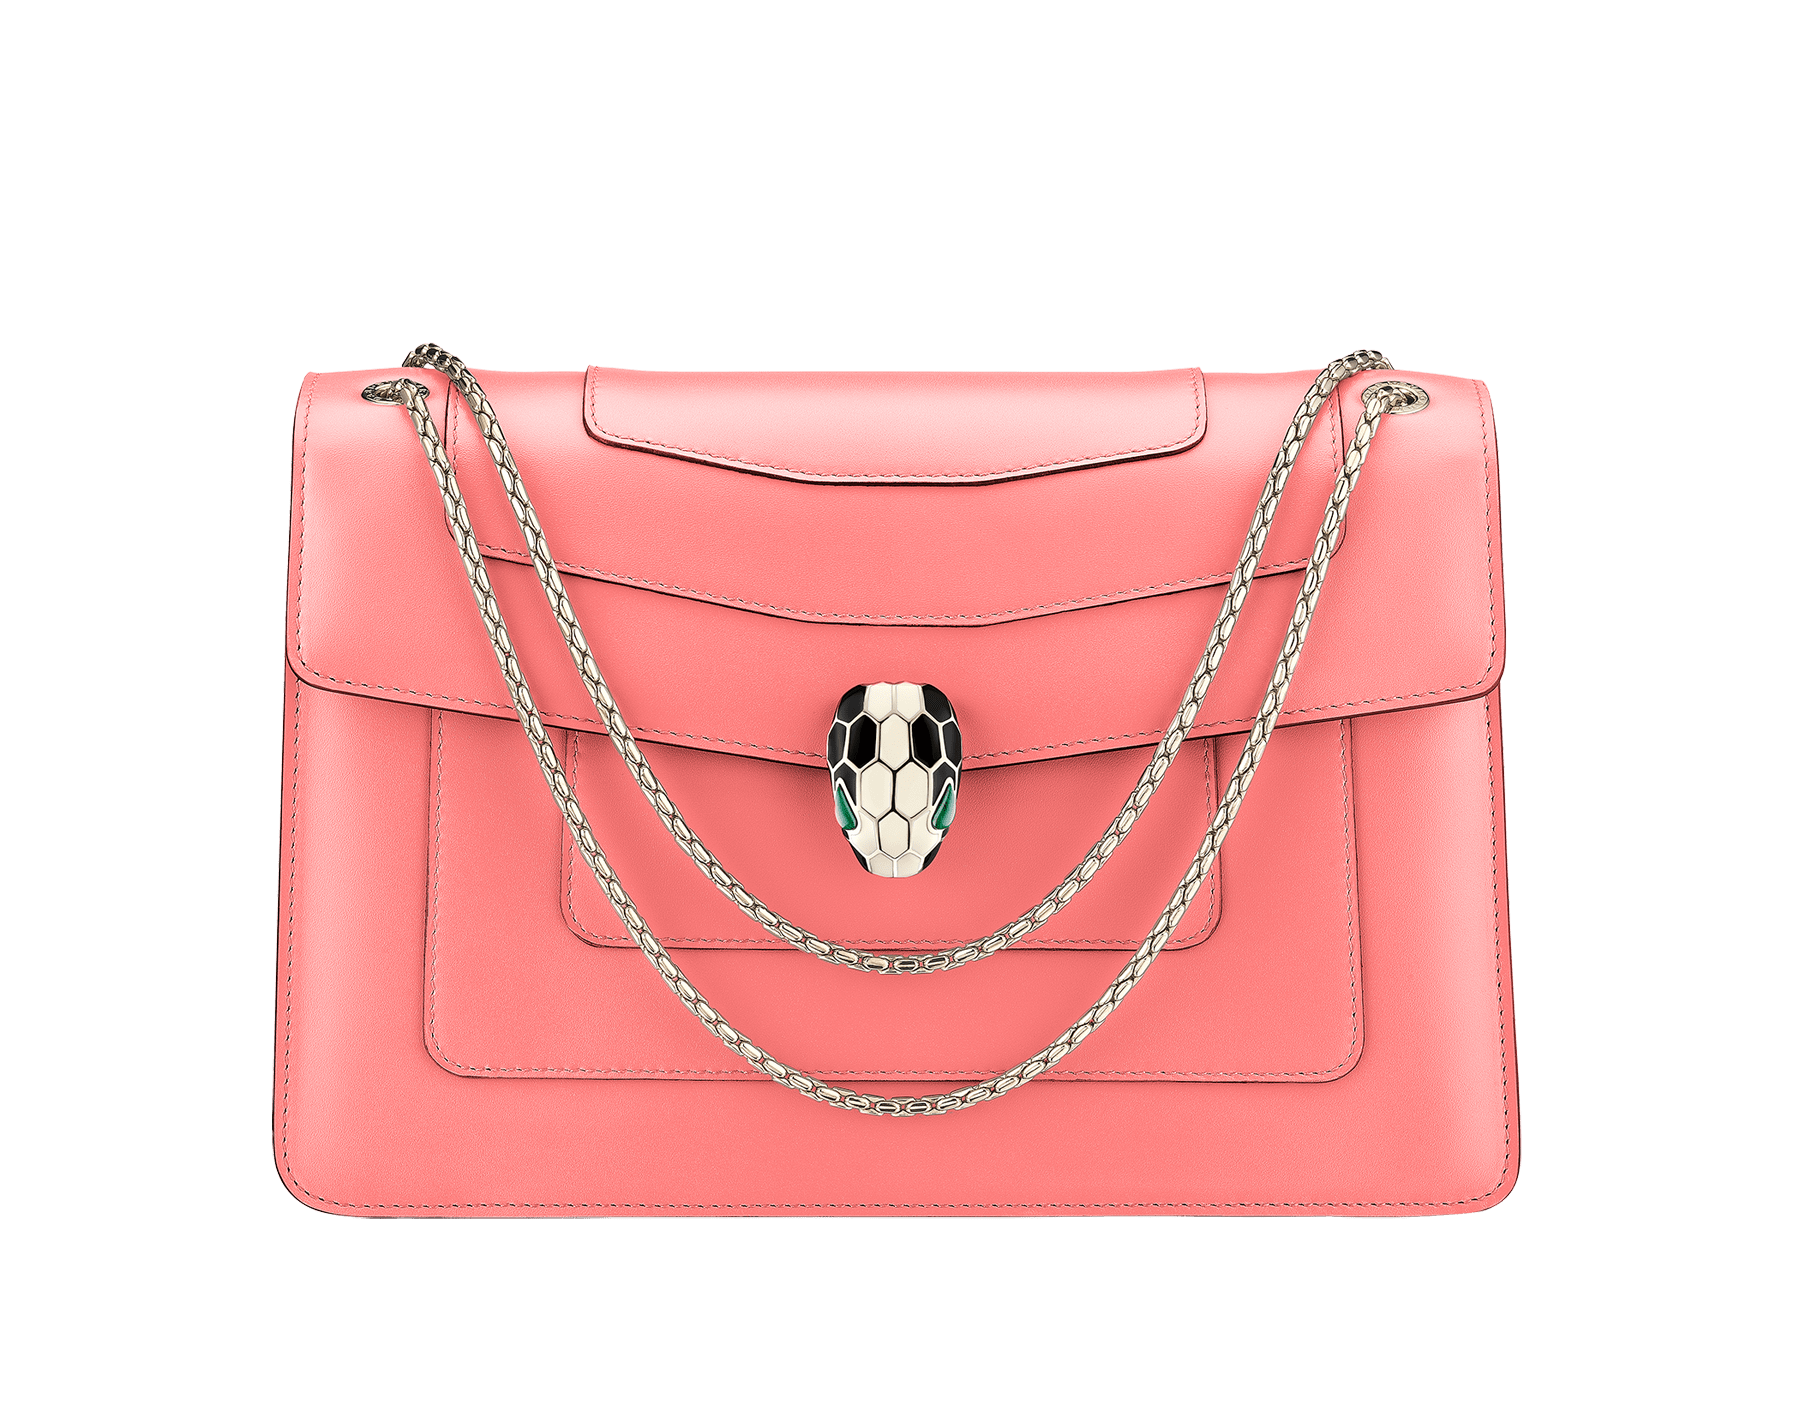 Serpenti Forever shoulder bag in silky coral calf leather. Iconic snakehead closure in light gold plated brass embellished with black and white enamel and green malachite eyes. 288704 image 1